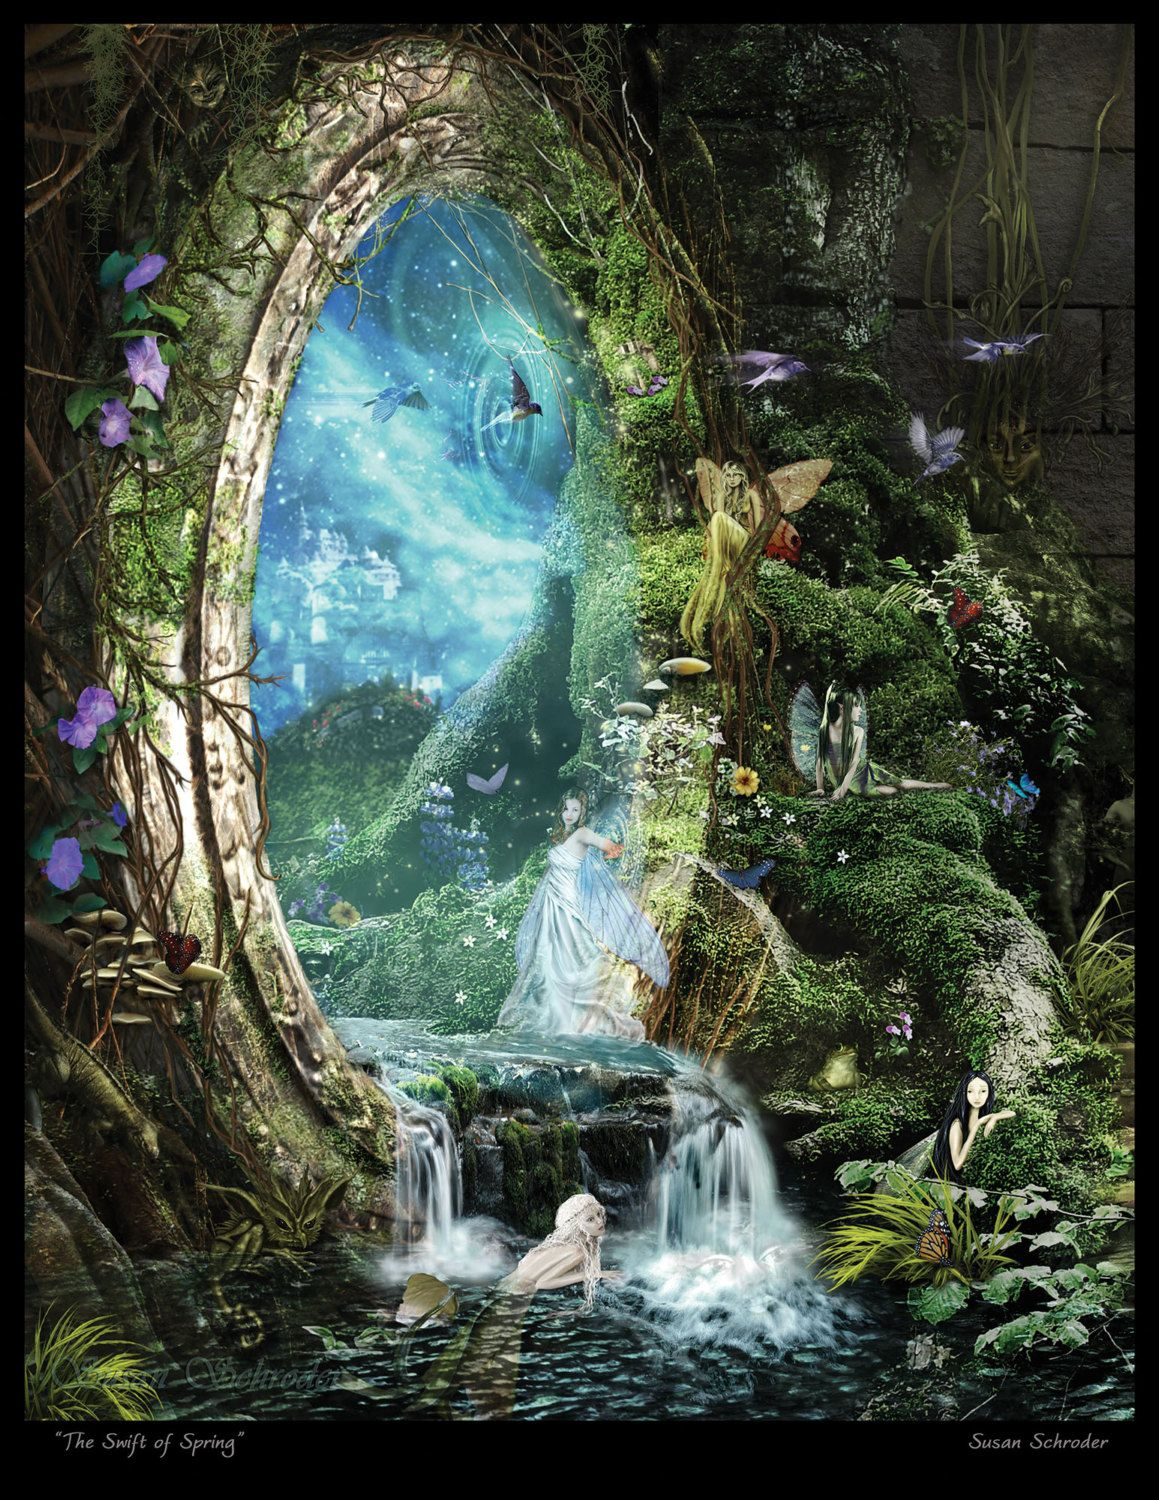 Swift of Spring Portal by Susan Schroder - Mythic